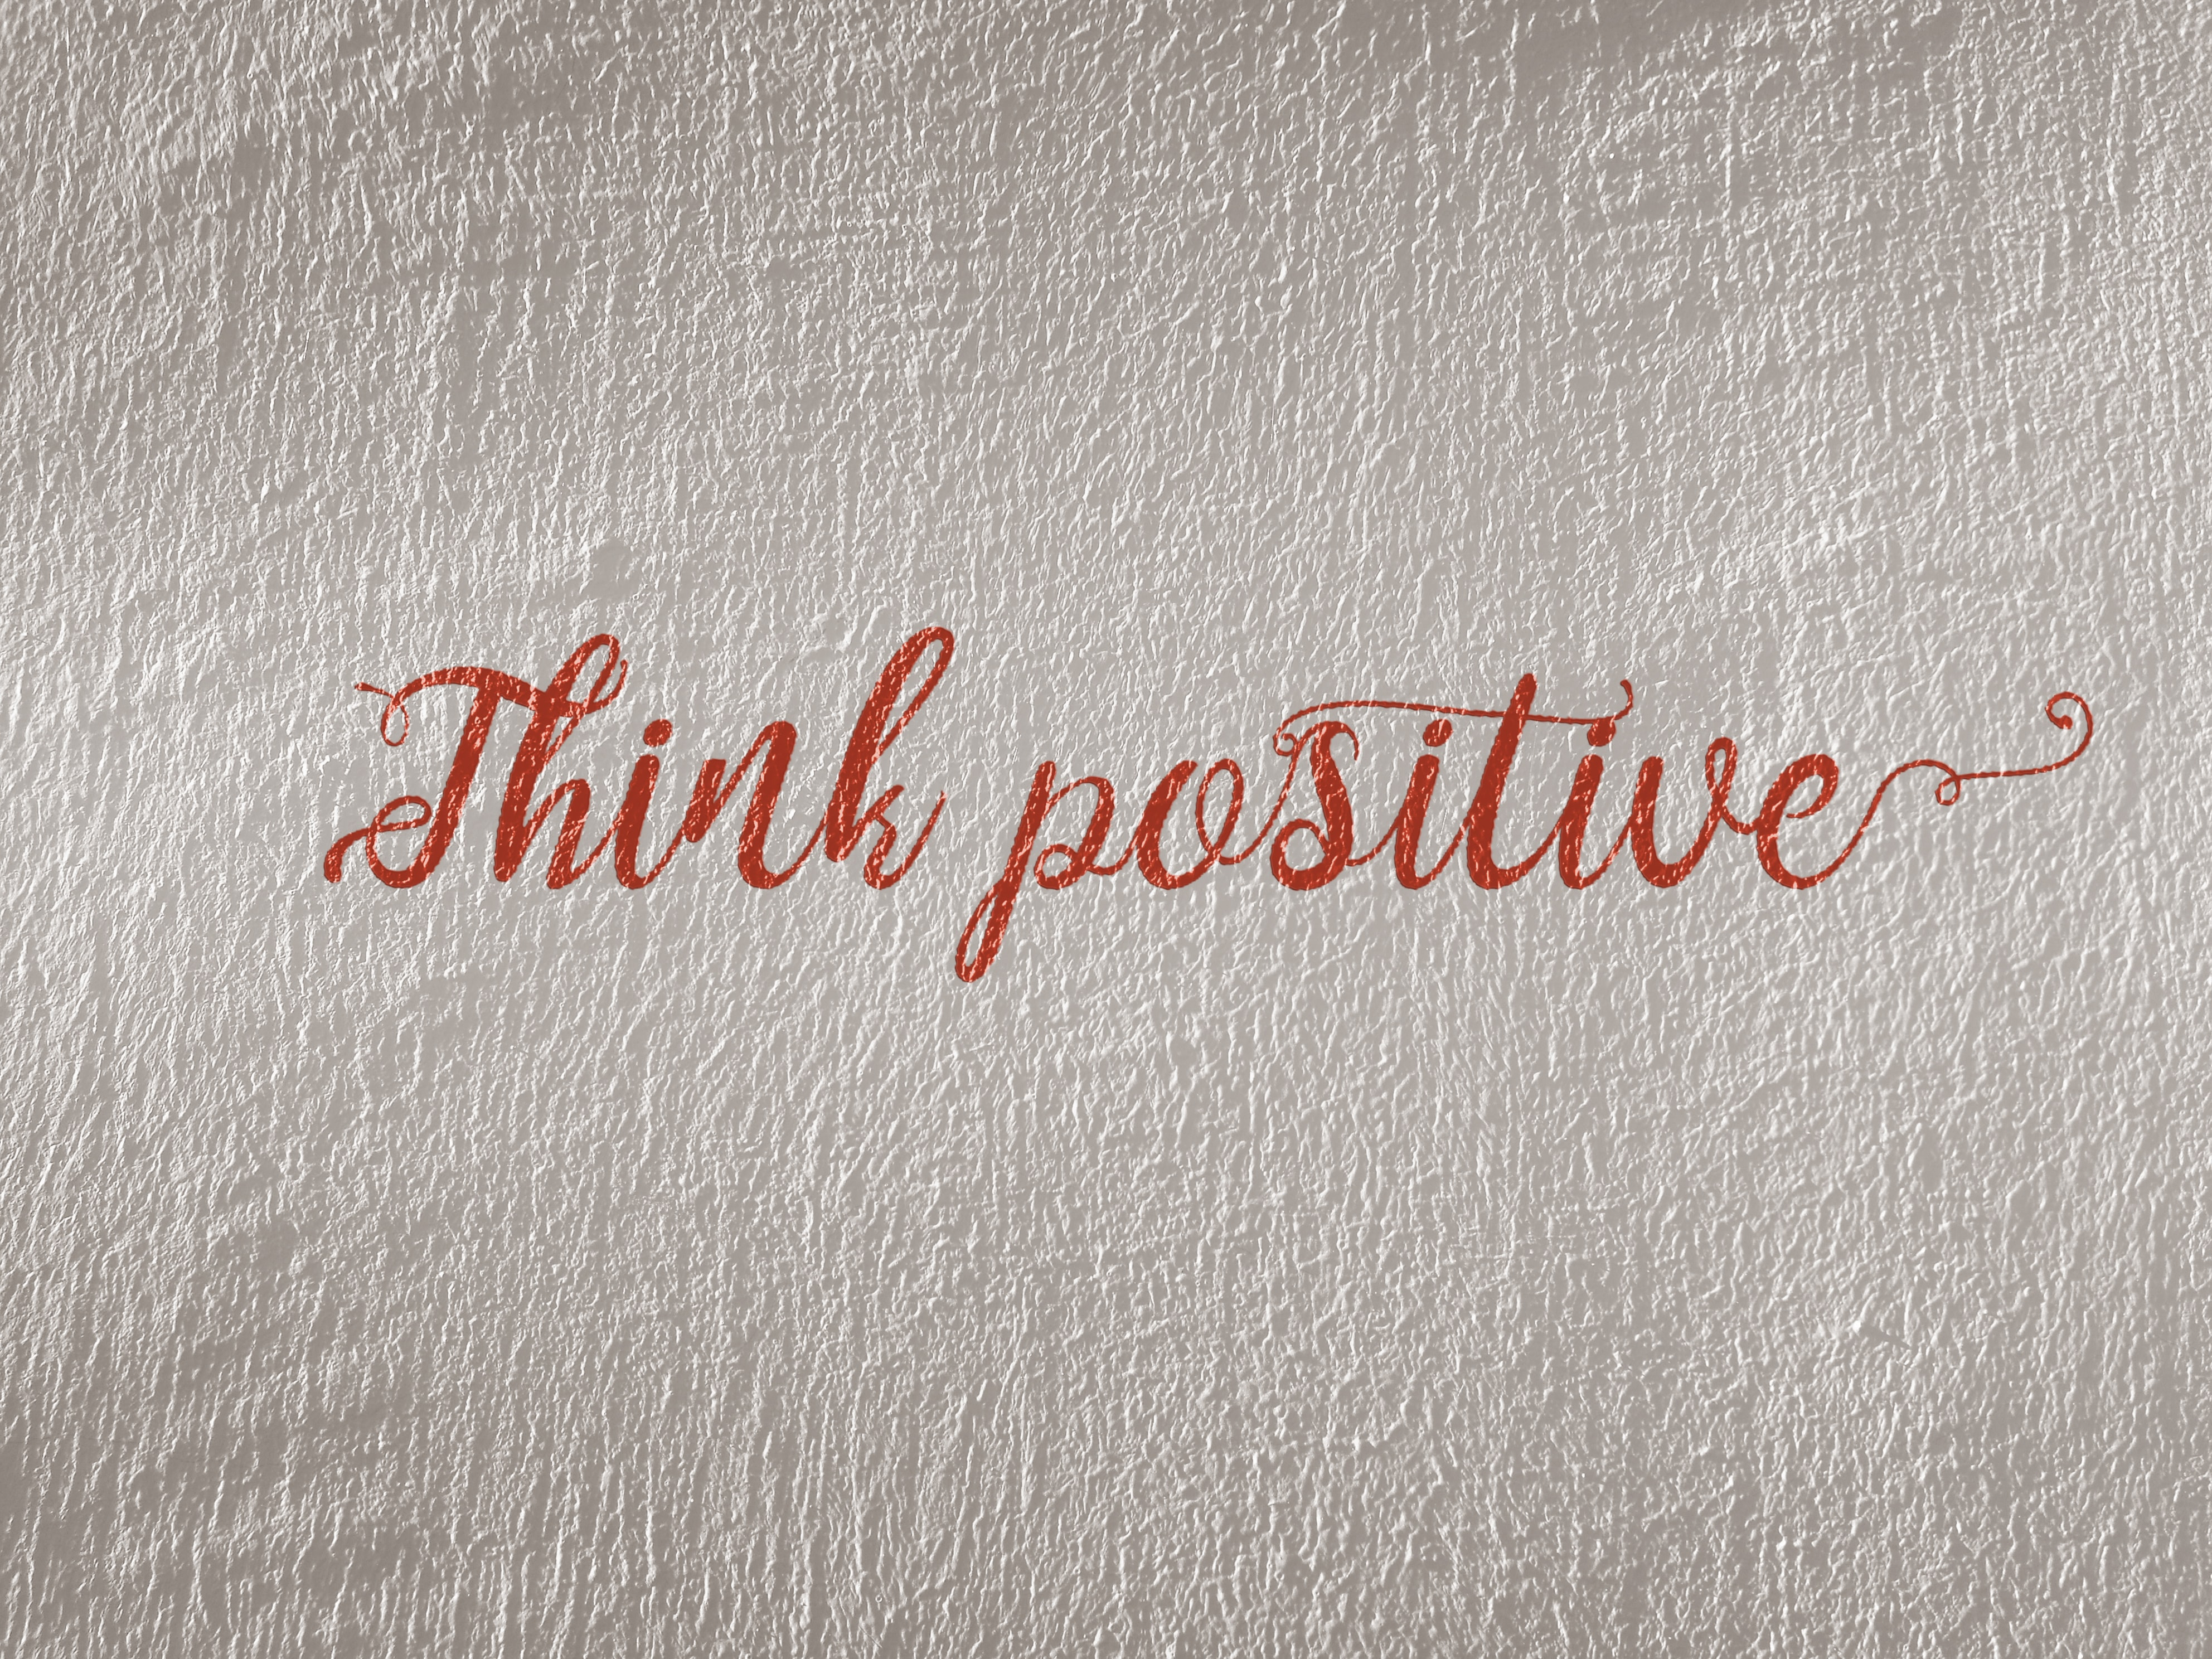 PRT Staffing Work Culture Promoting Positivity Think Positive Script on White Wall